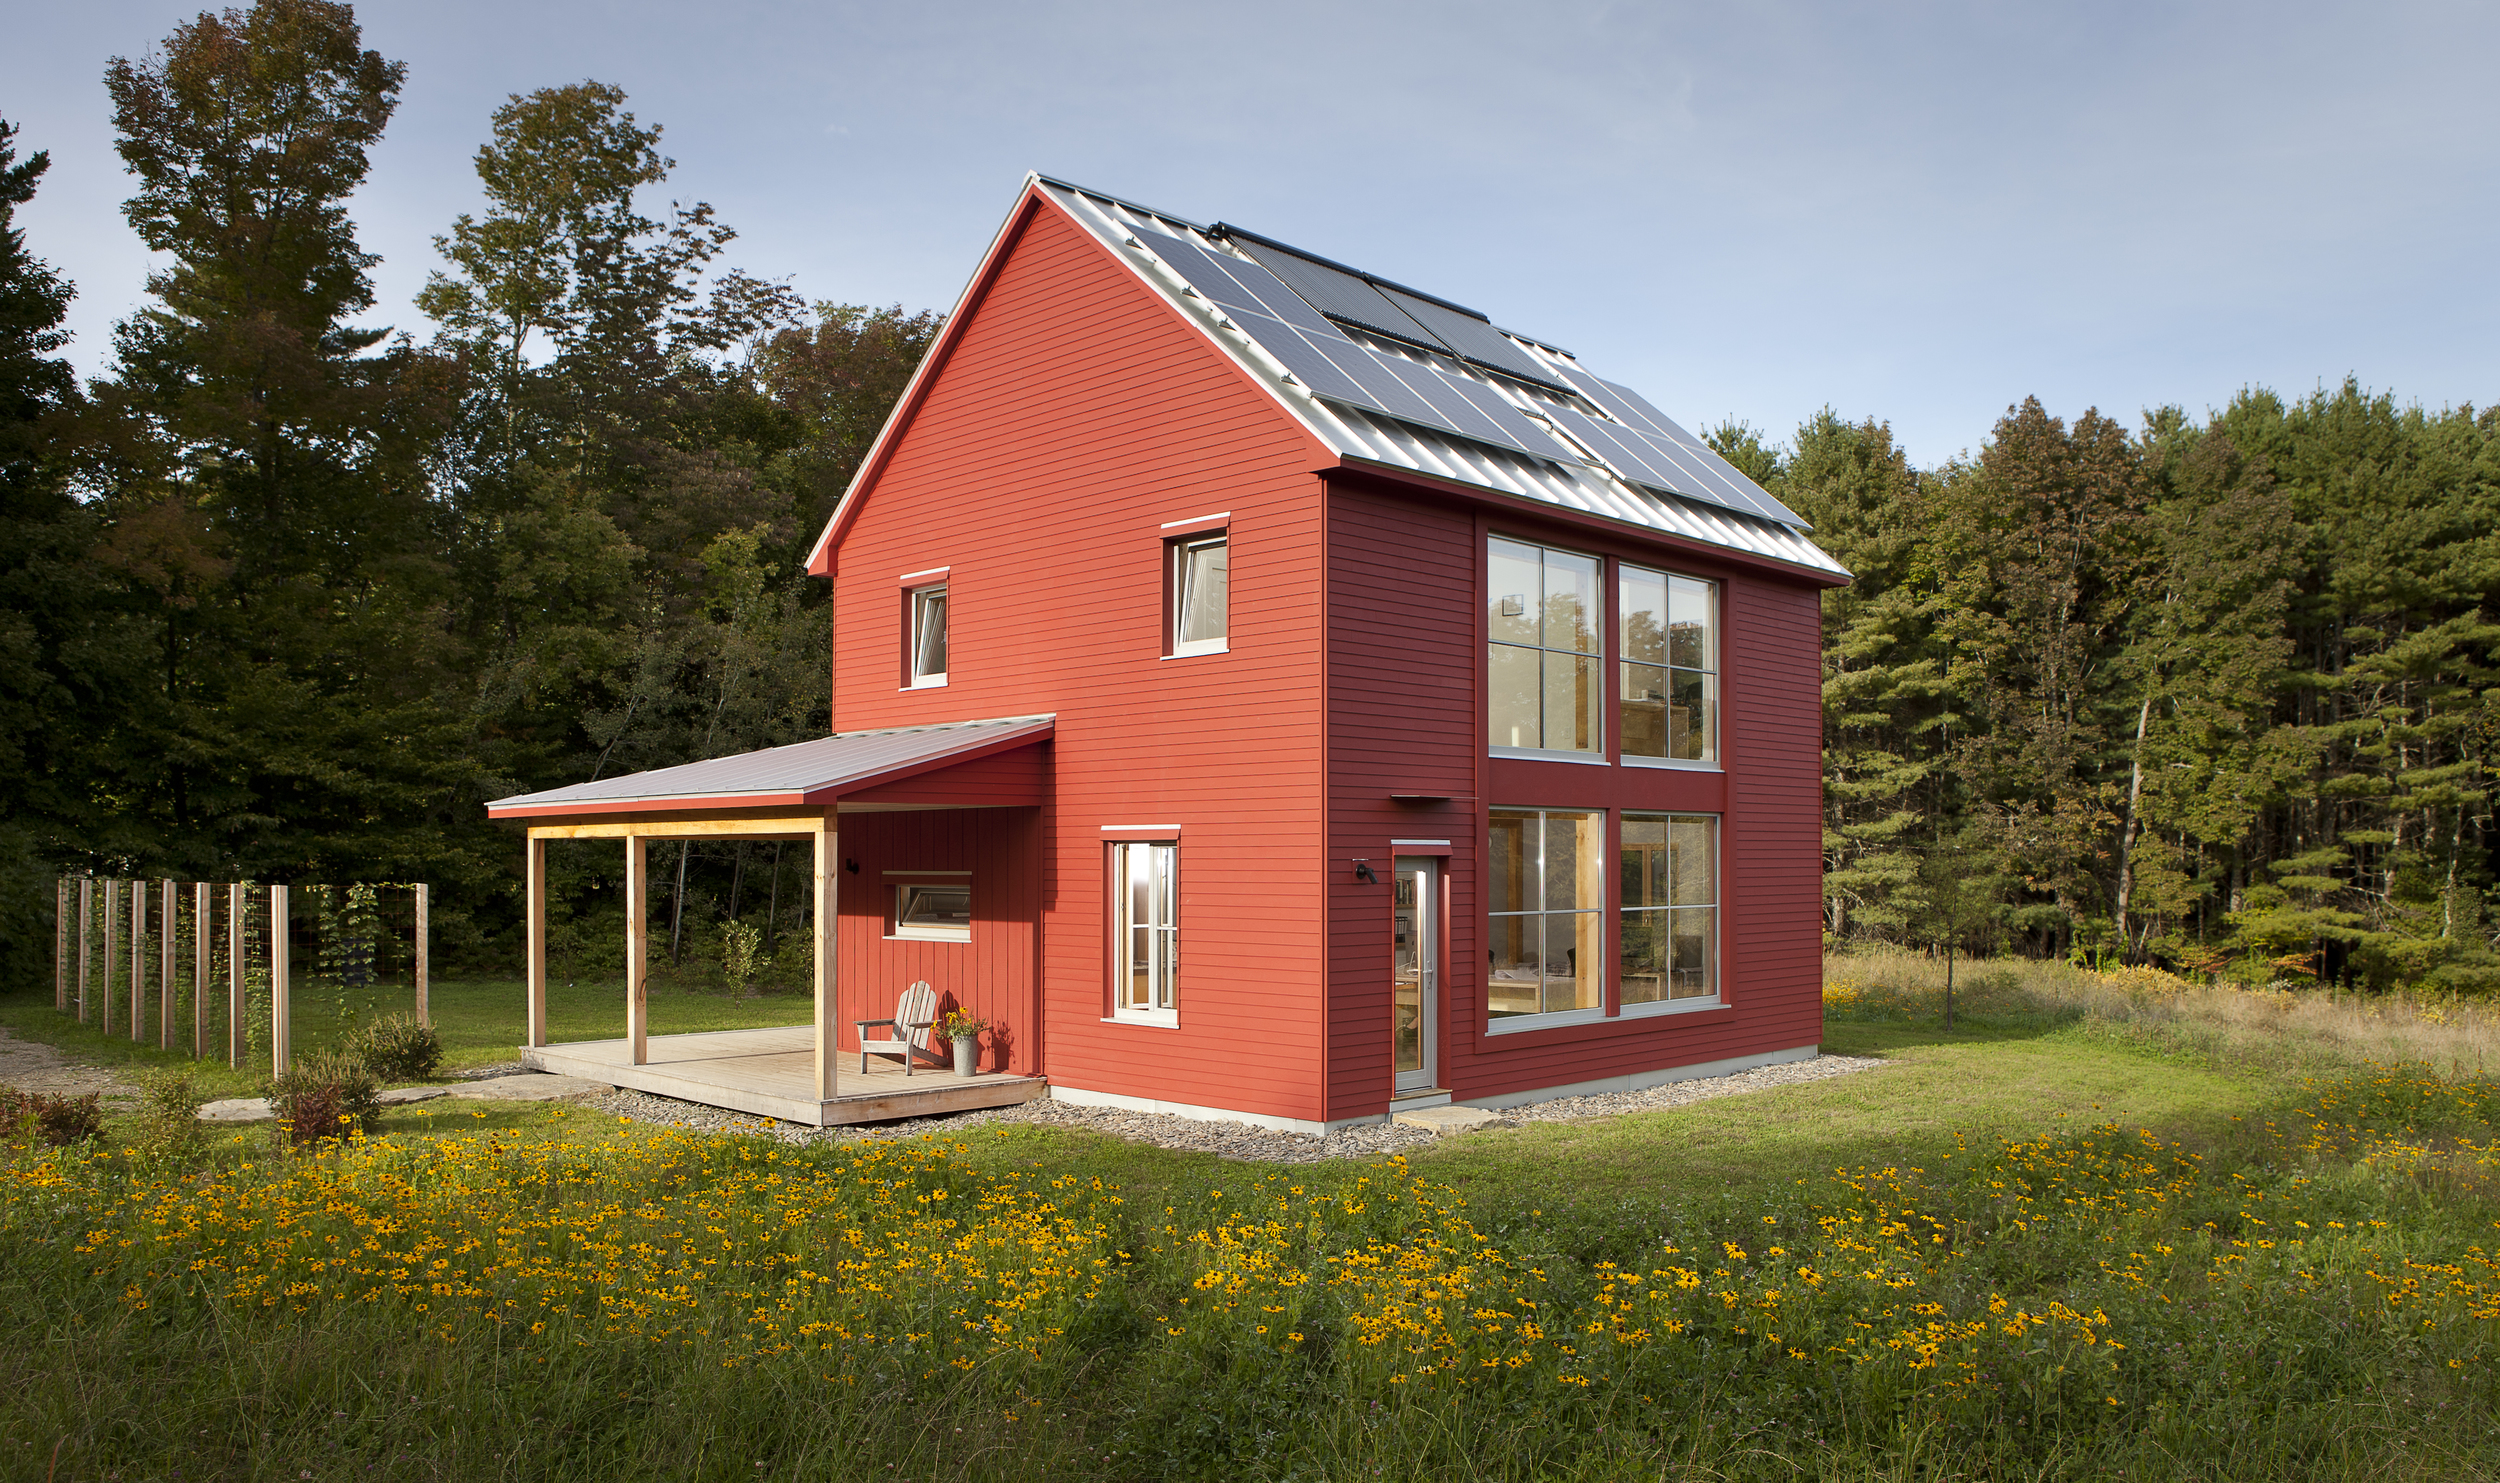 The 39 passive house 39 path to extreme energy efficiency for Efficient homes